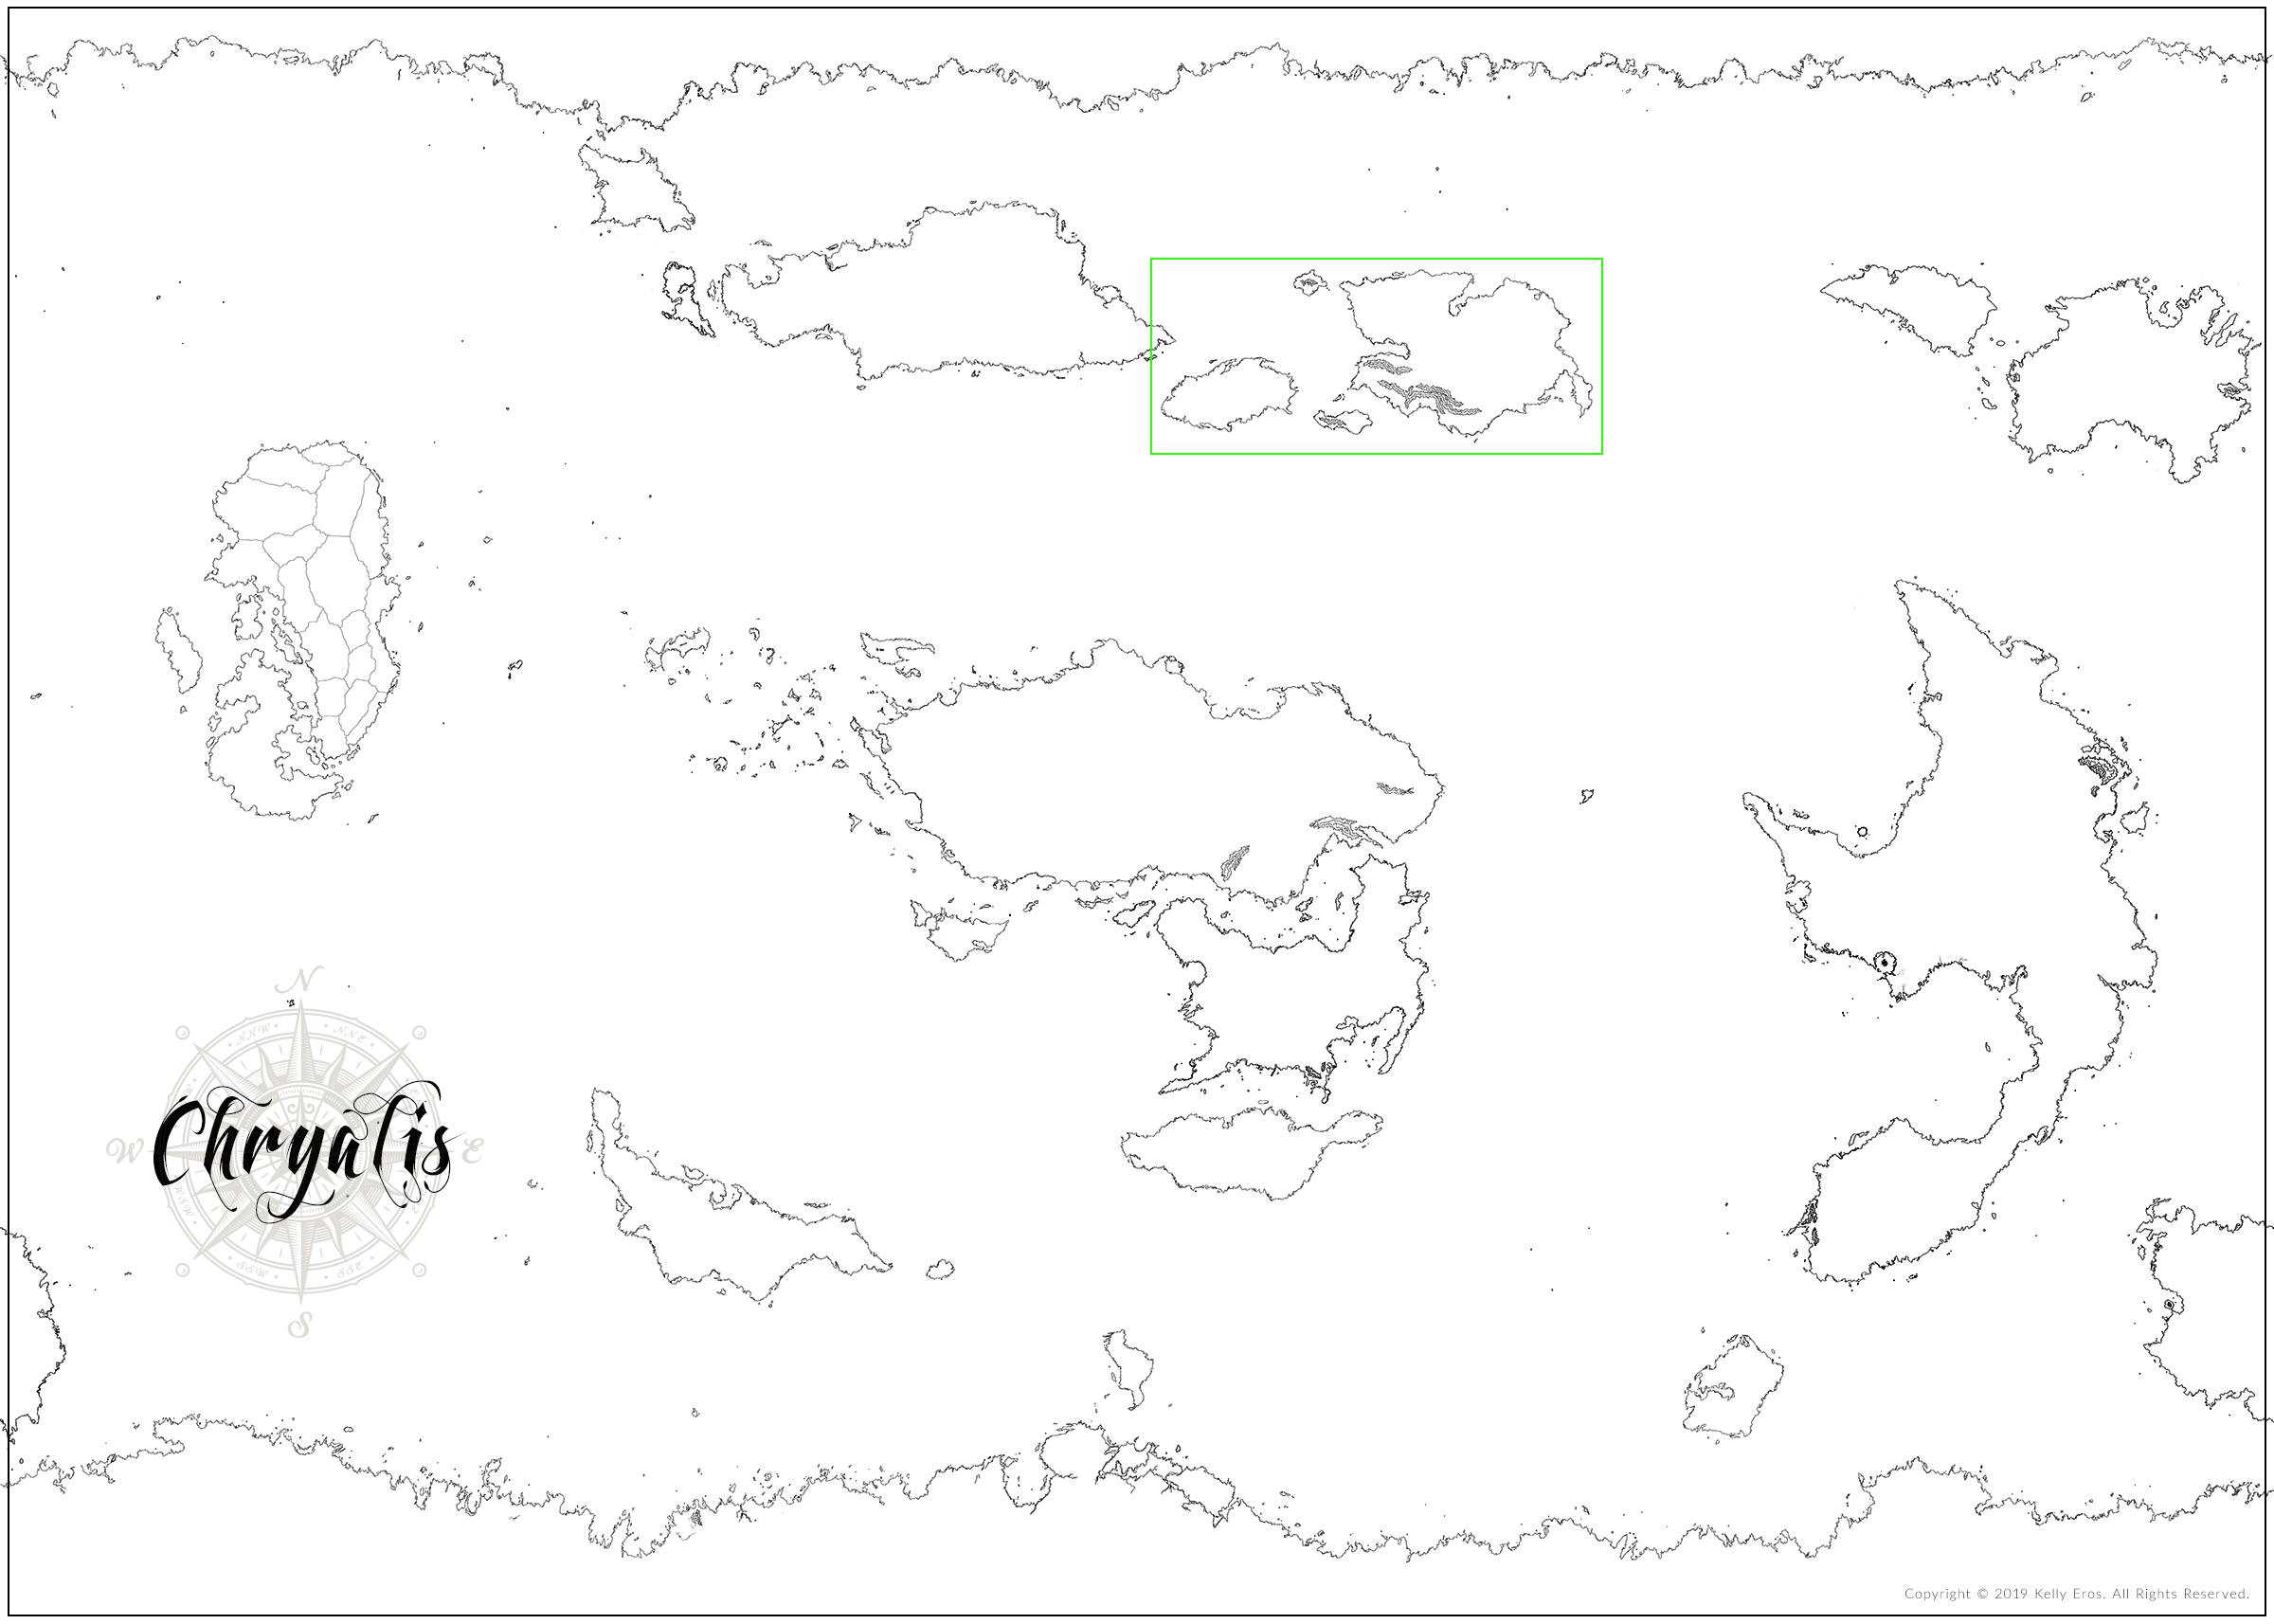 Chryalis World Map - Copyright ©2019 Kelly Eros